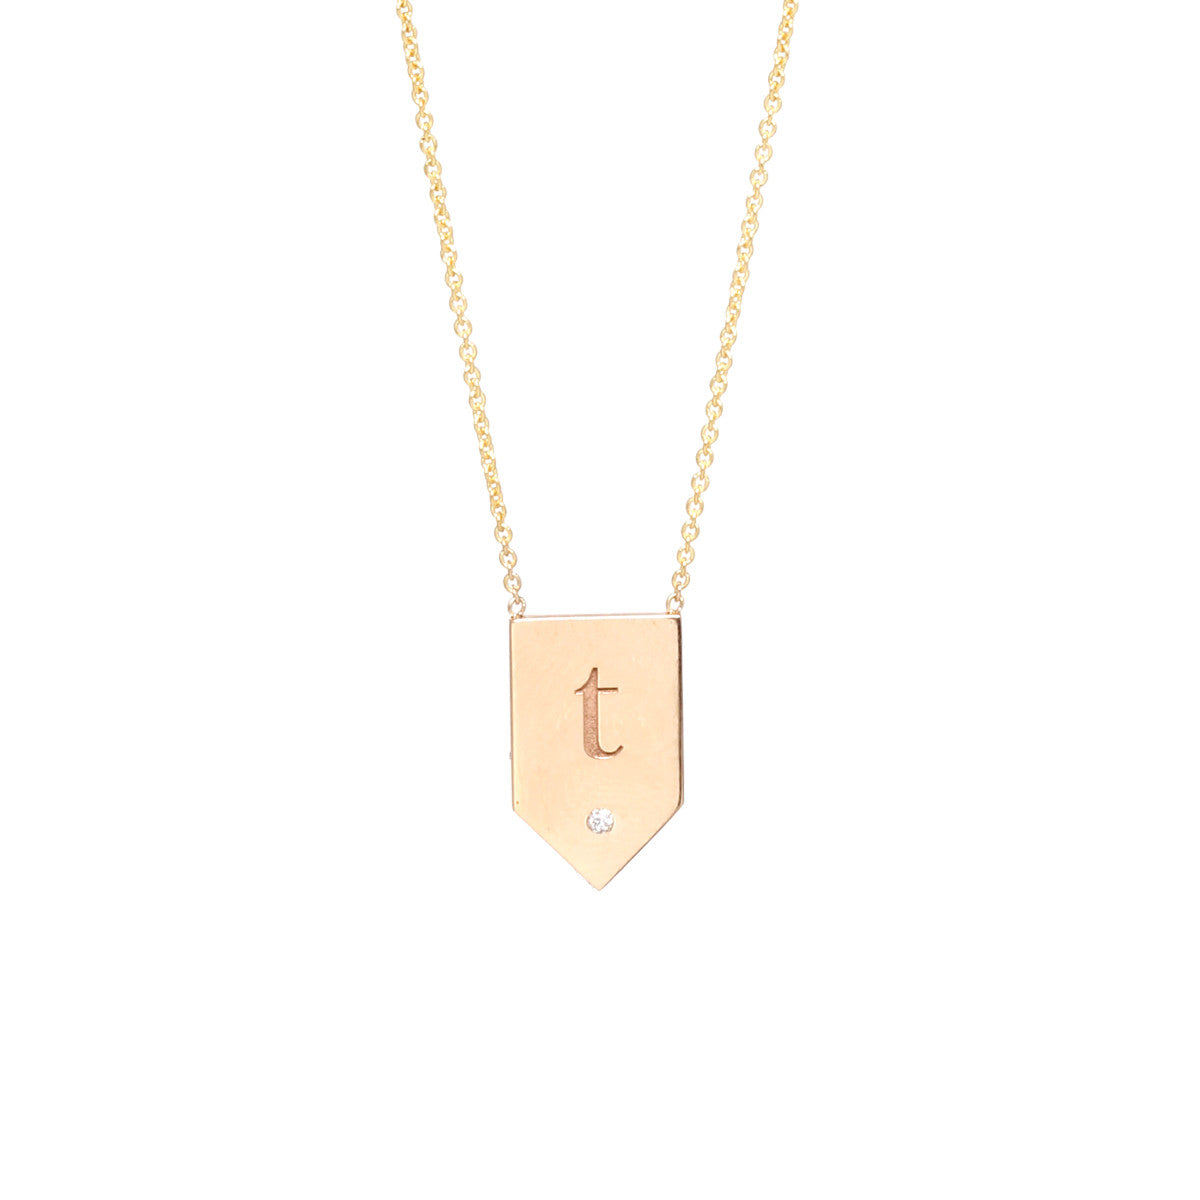 14k engraved flag shaped necklace